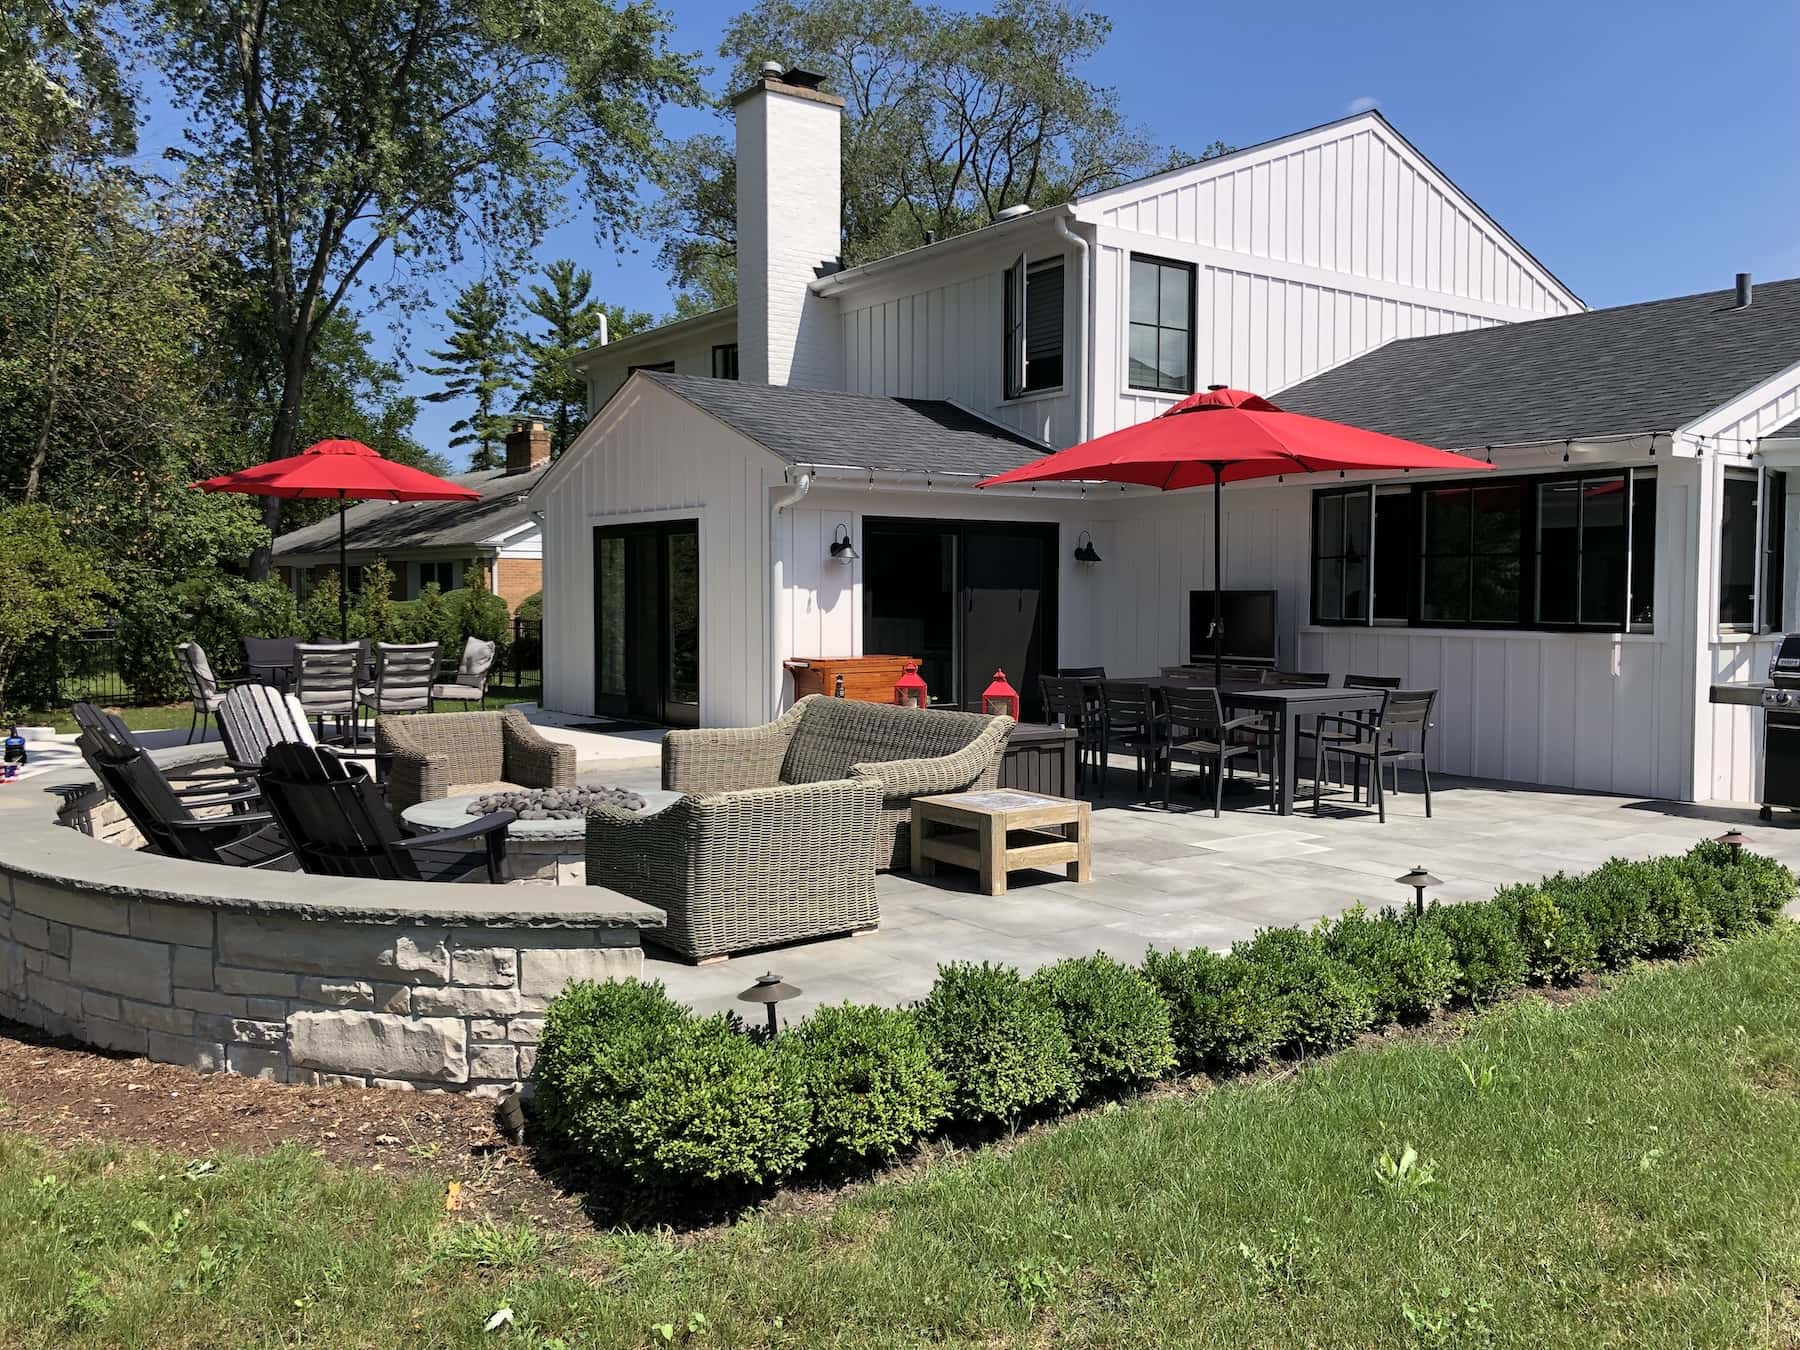 Landscaping Outdoor Dining Paver Patio Fire Pit Northfield IL